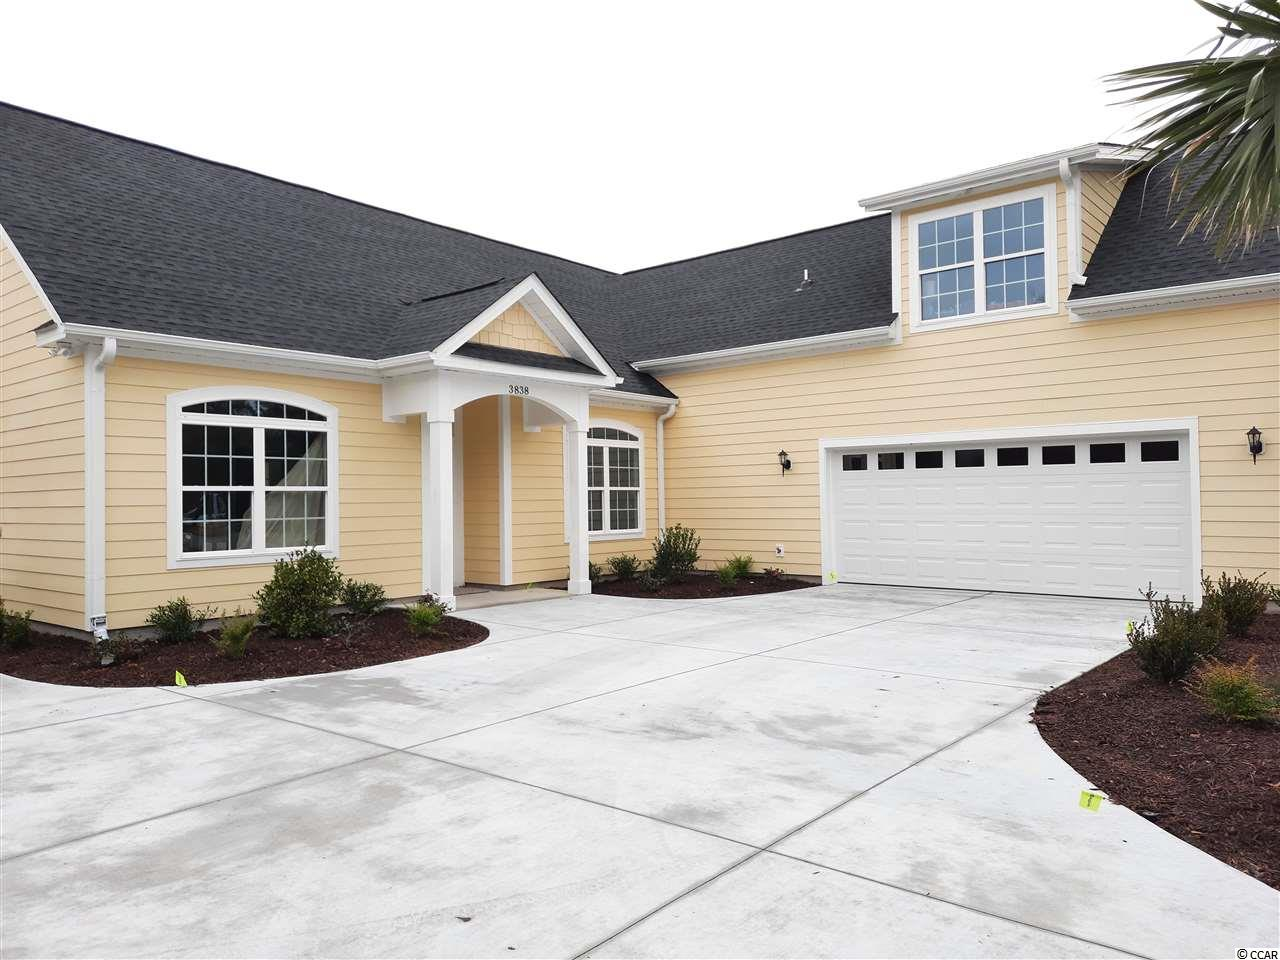 This custom built home at 3842 Journey's End Road features just about everything on the checklist. Centrally located in Murrells Inlet, you are a half mile from Wacca Wache Marina, and, about 2 miles from the Marshwalk. NO HOA, with plenty of room for all your toys. This home features an over-sized garage with a bonus room and private half bath. If open floor plan is what you want, here you go. Split bedroom plan with than ample space. Featuring plenty of closets, a pantry, and, laundry room. No carpet, all luxury plank floors throughout. Granite counter-tops , stainless steel appliances, custom cabinets features in the kitchen. Expansive rear porch with plenty of room for a grill, table, and, rocking chairs. Come take a look before it's gone. *** the pictures are from a very similar home that has recently sold.